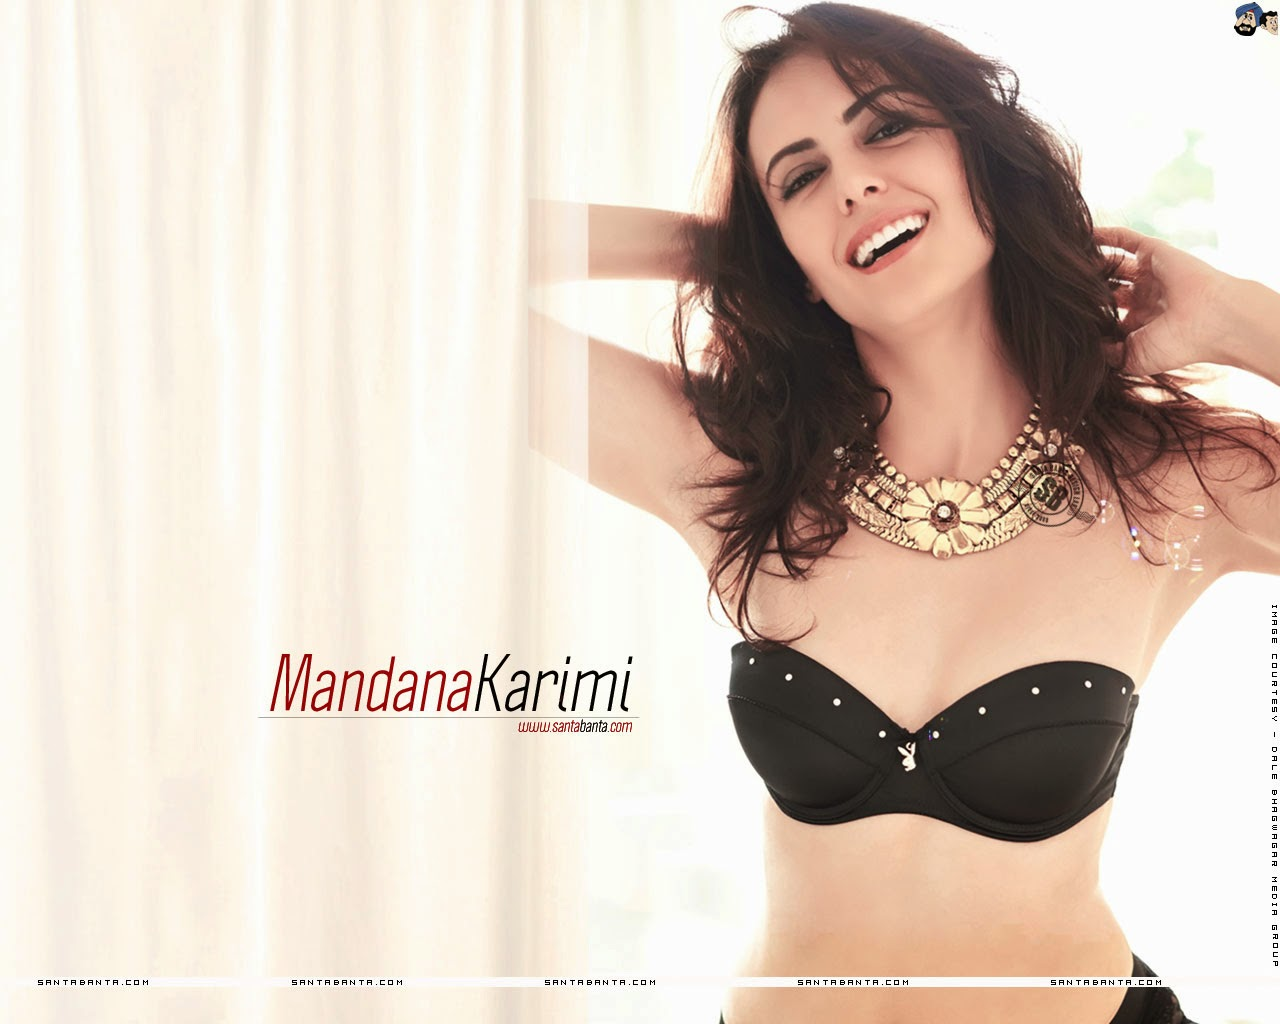 Mandana Karimi Smiling In Black Bra